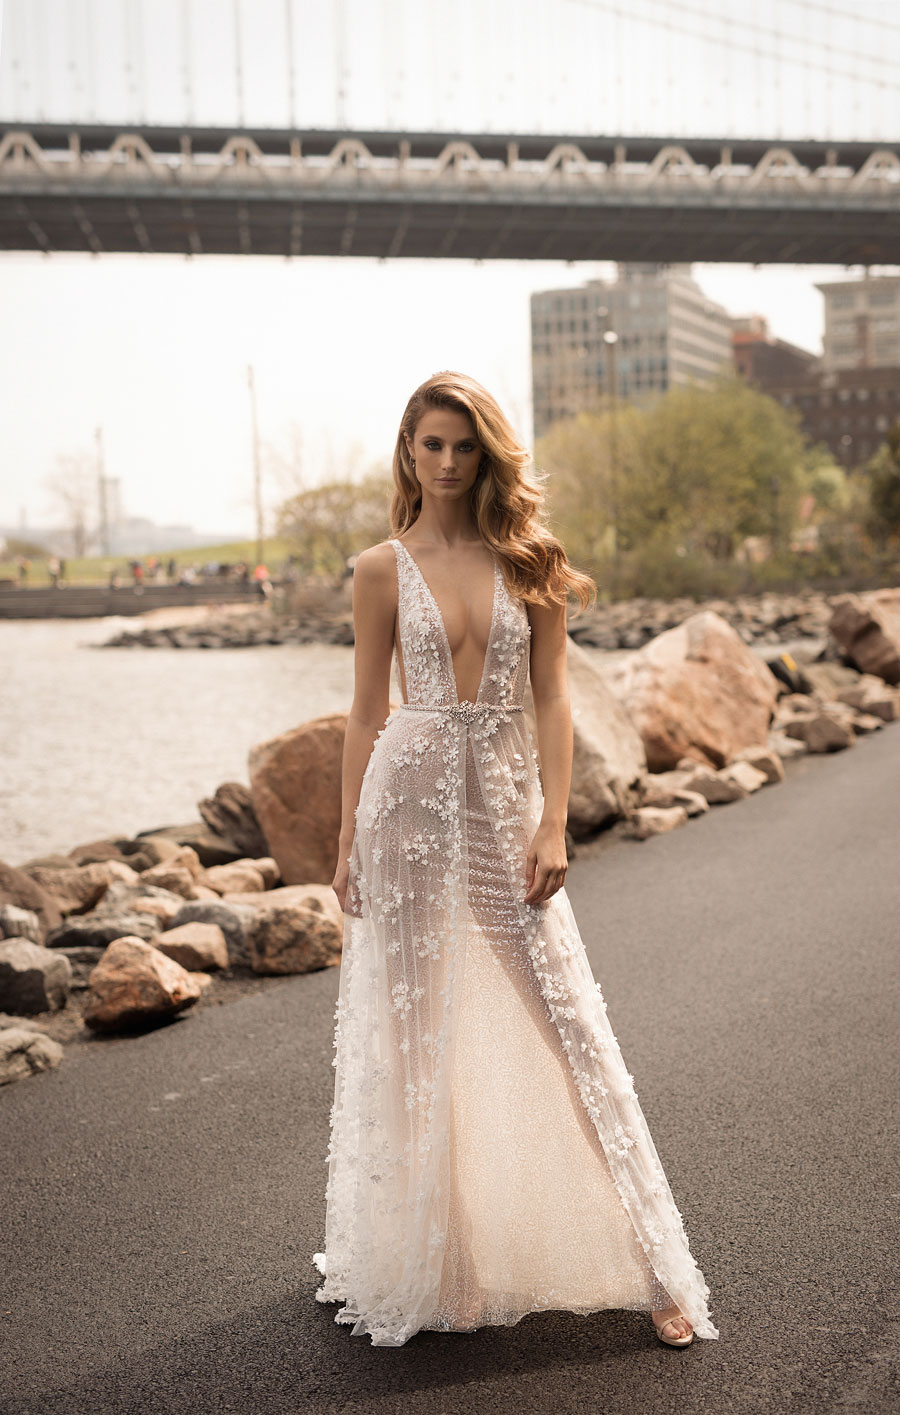 Berta bridal 2018 the most in demand wedding dresses in the world if youre after daring ultra glamorous and completely unique bridal gowns then you need to see the berta bridal 2018 collection junglespirit Image collections